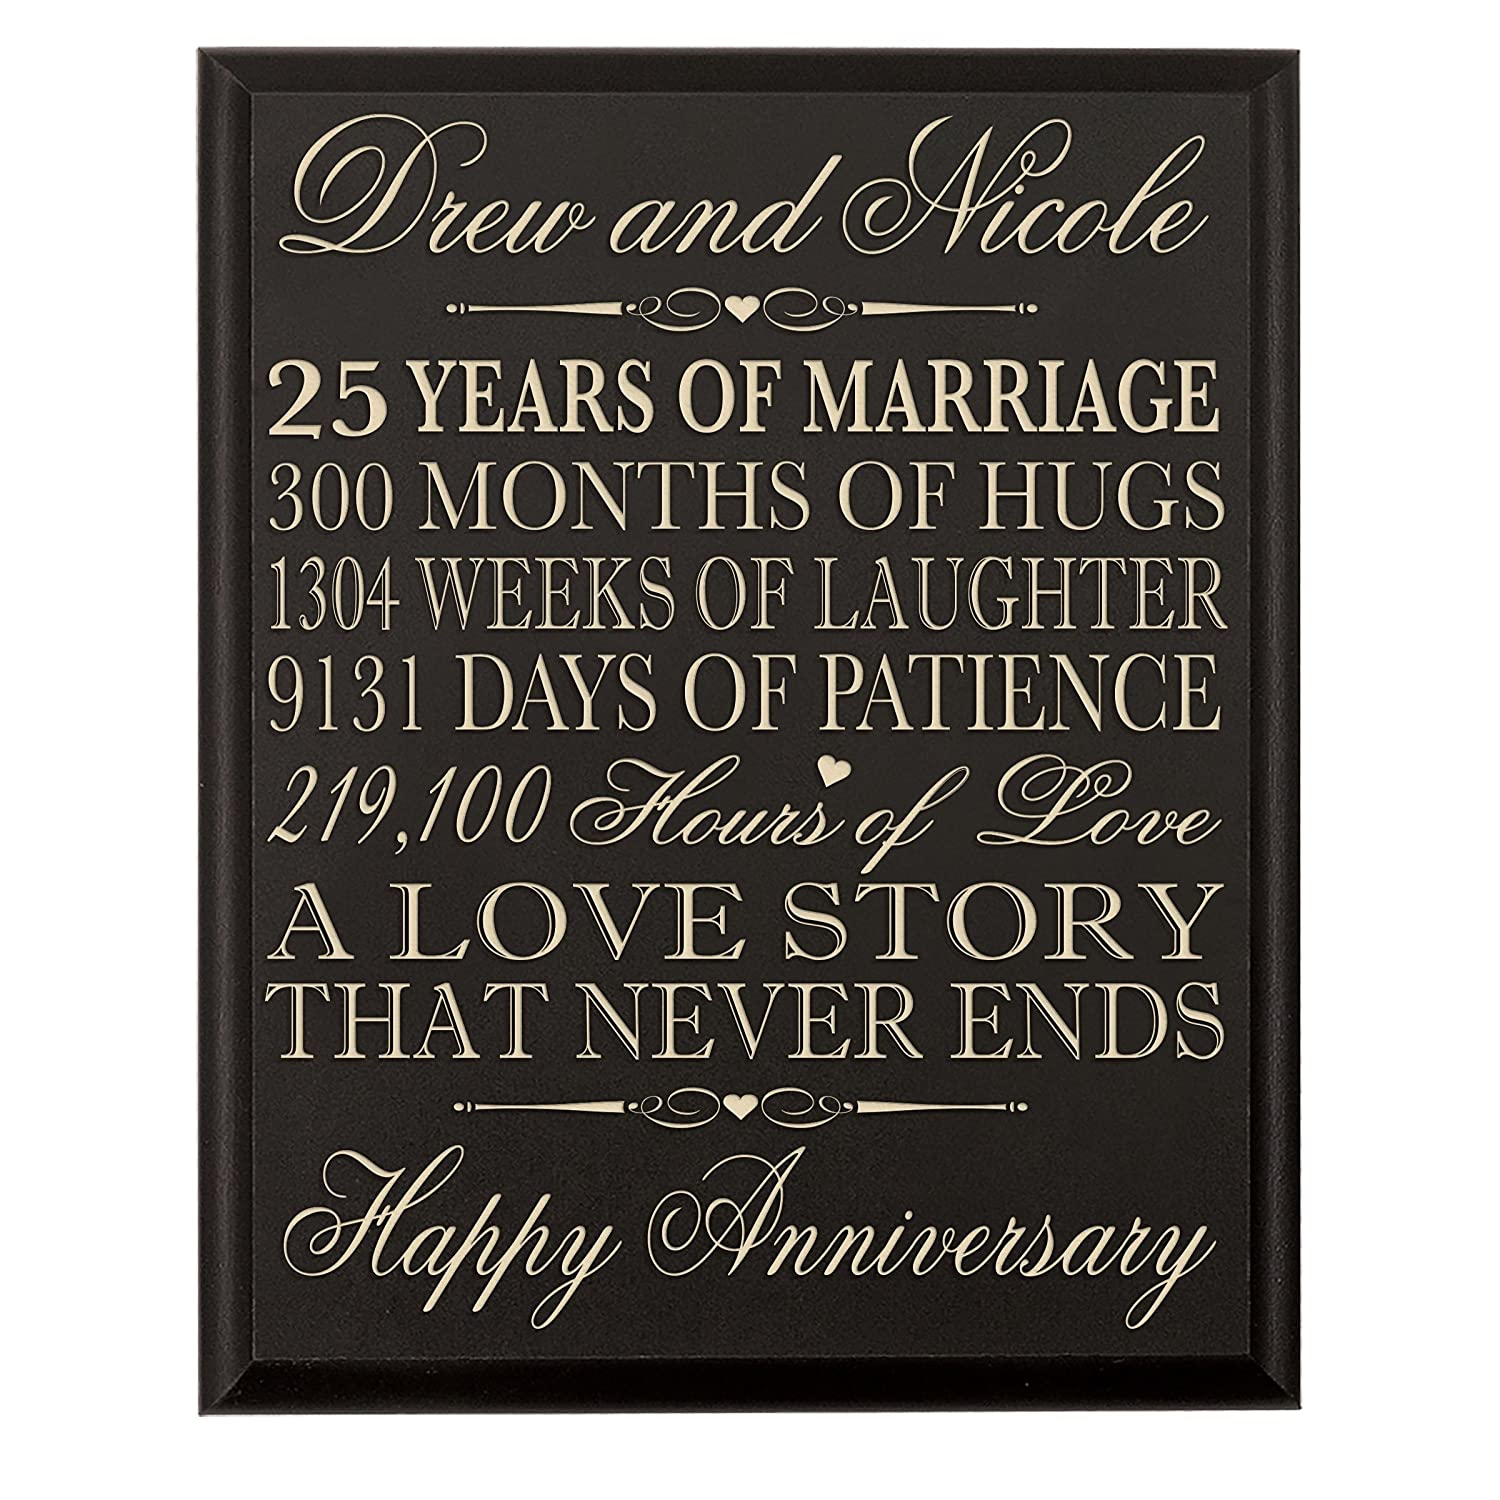 Custom Made 25th Anniversary Gifts for Her25th Wedding Anniversary Gifts for Him Wall Plaque By ...  sc 1 st  GENÇ ASKON & Custom Made 25th Anniversary Gifts for Her25th Wedding Anniversary ...